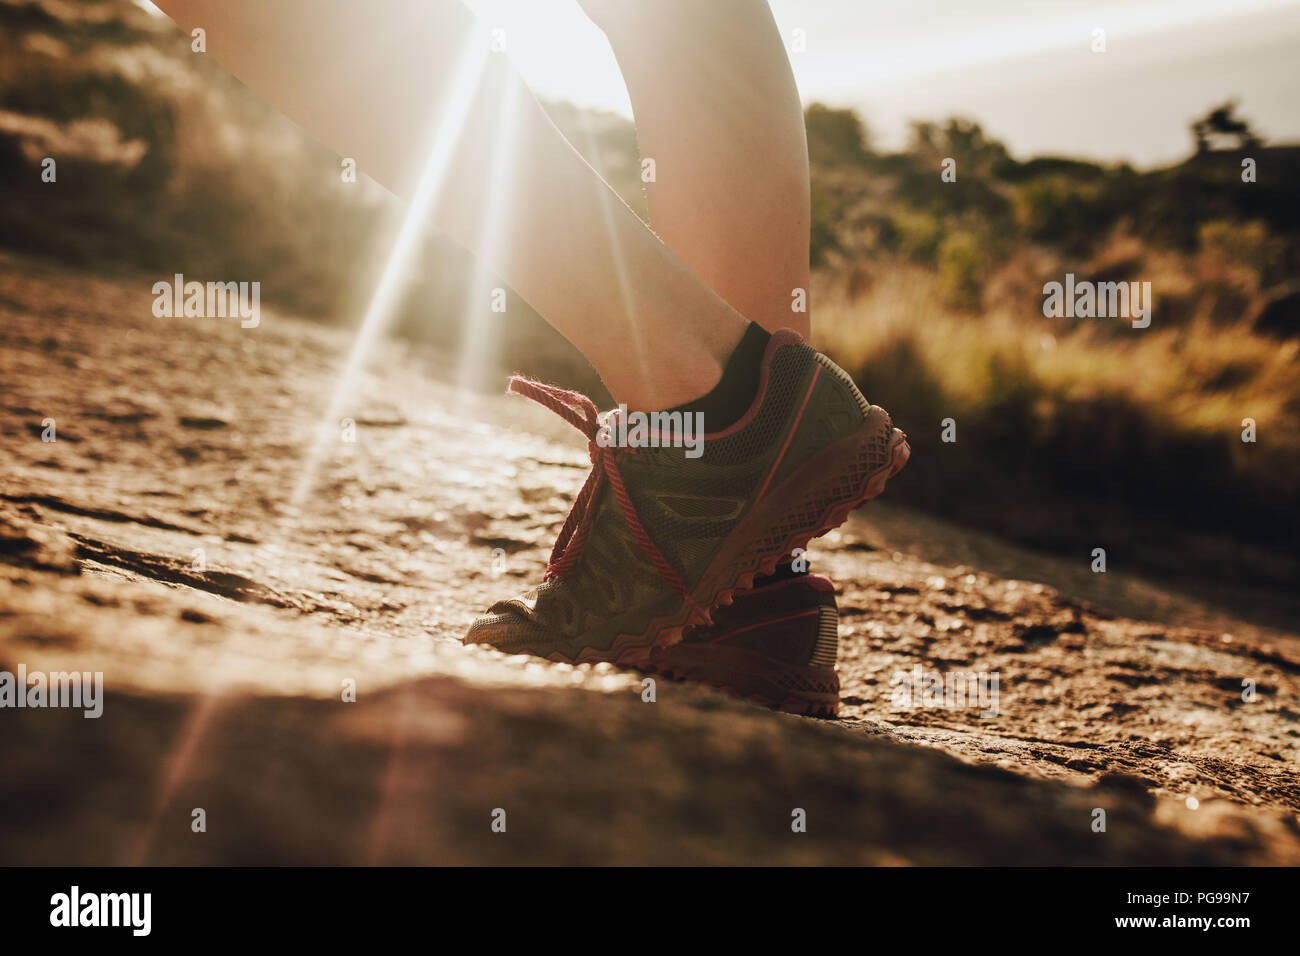 Close up female mountain trail runner wearing sports shoe standing in sunlight. Woman in running shoes standing in rocky trail. - Stock Image